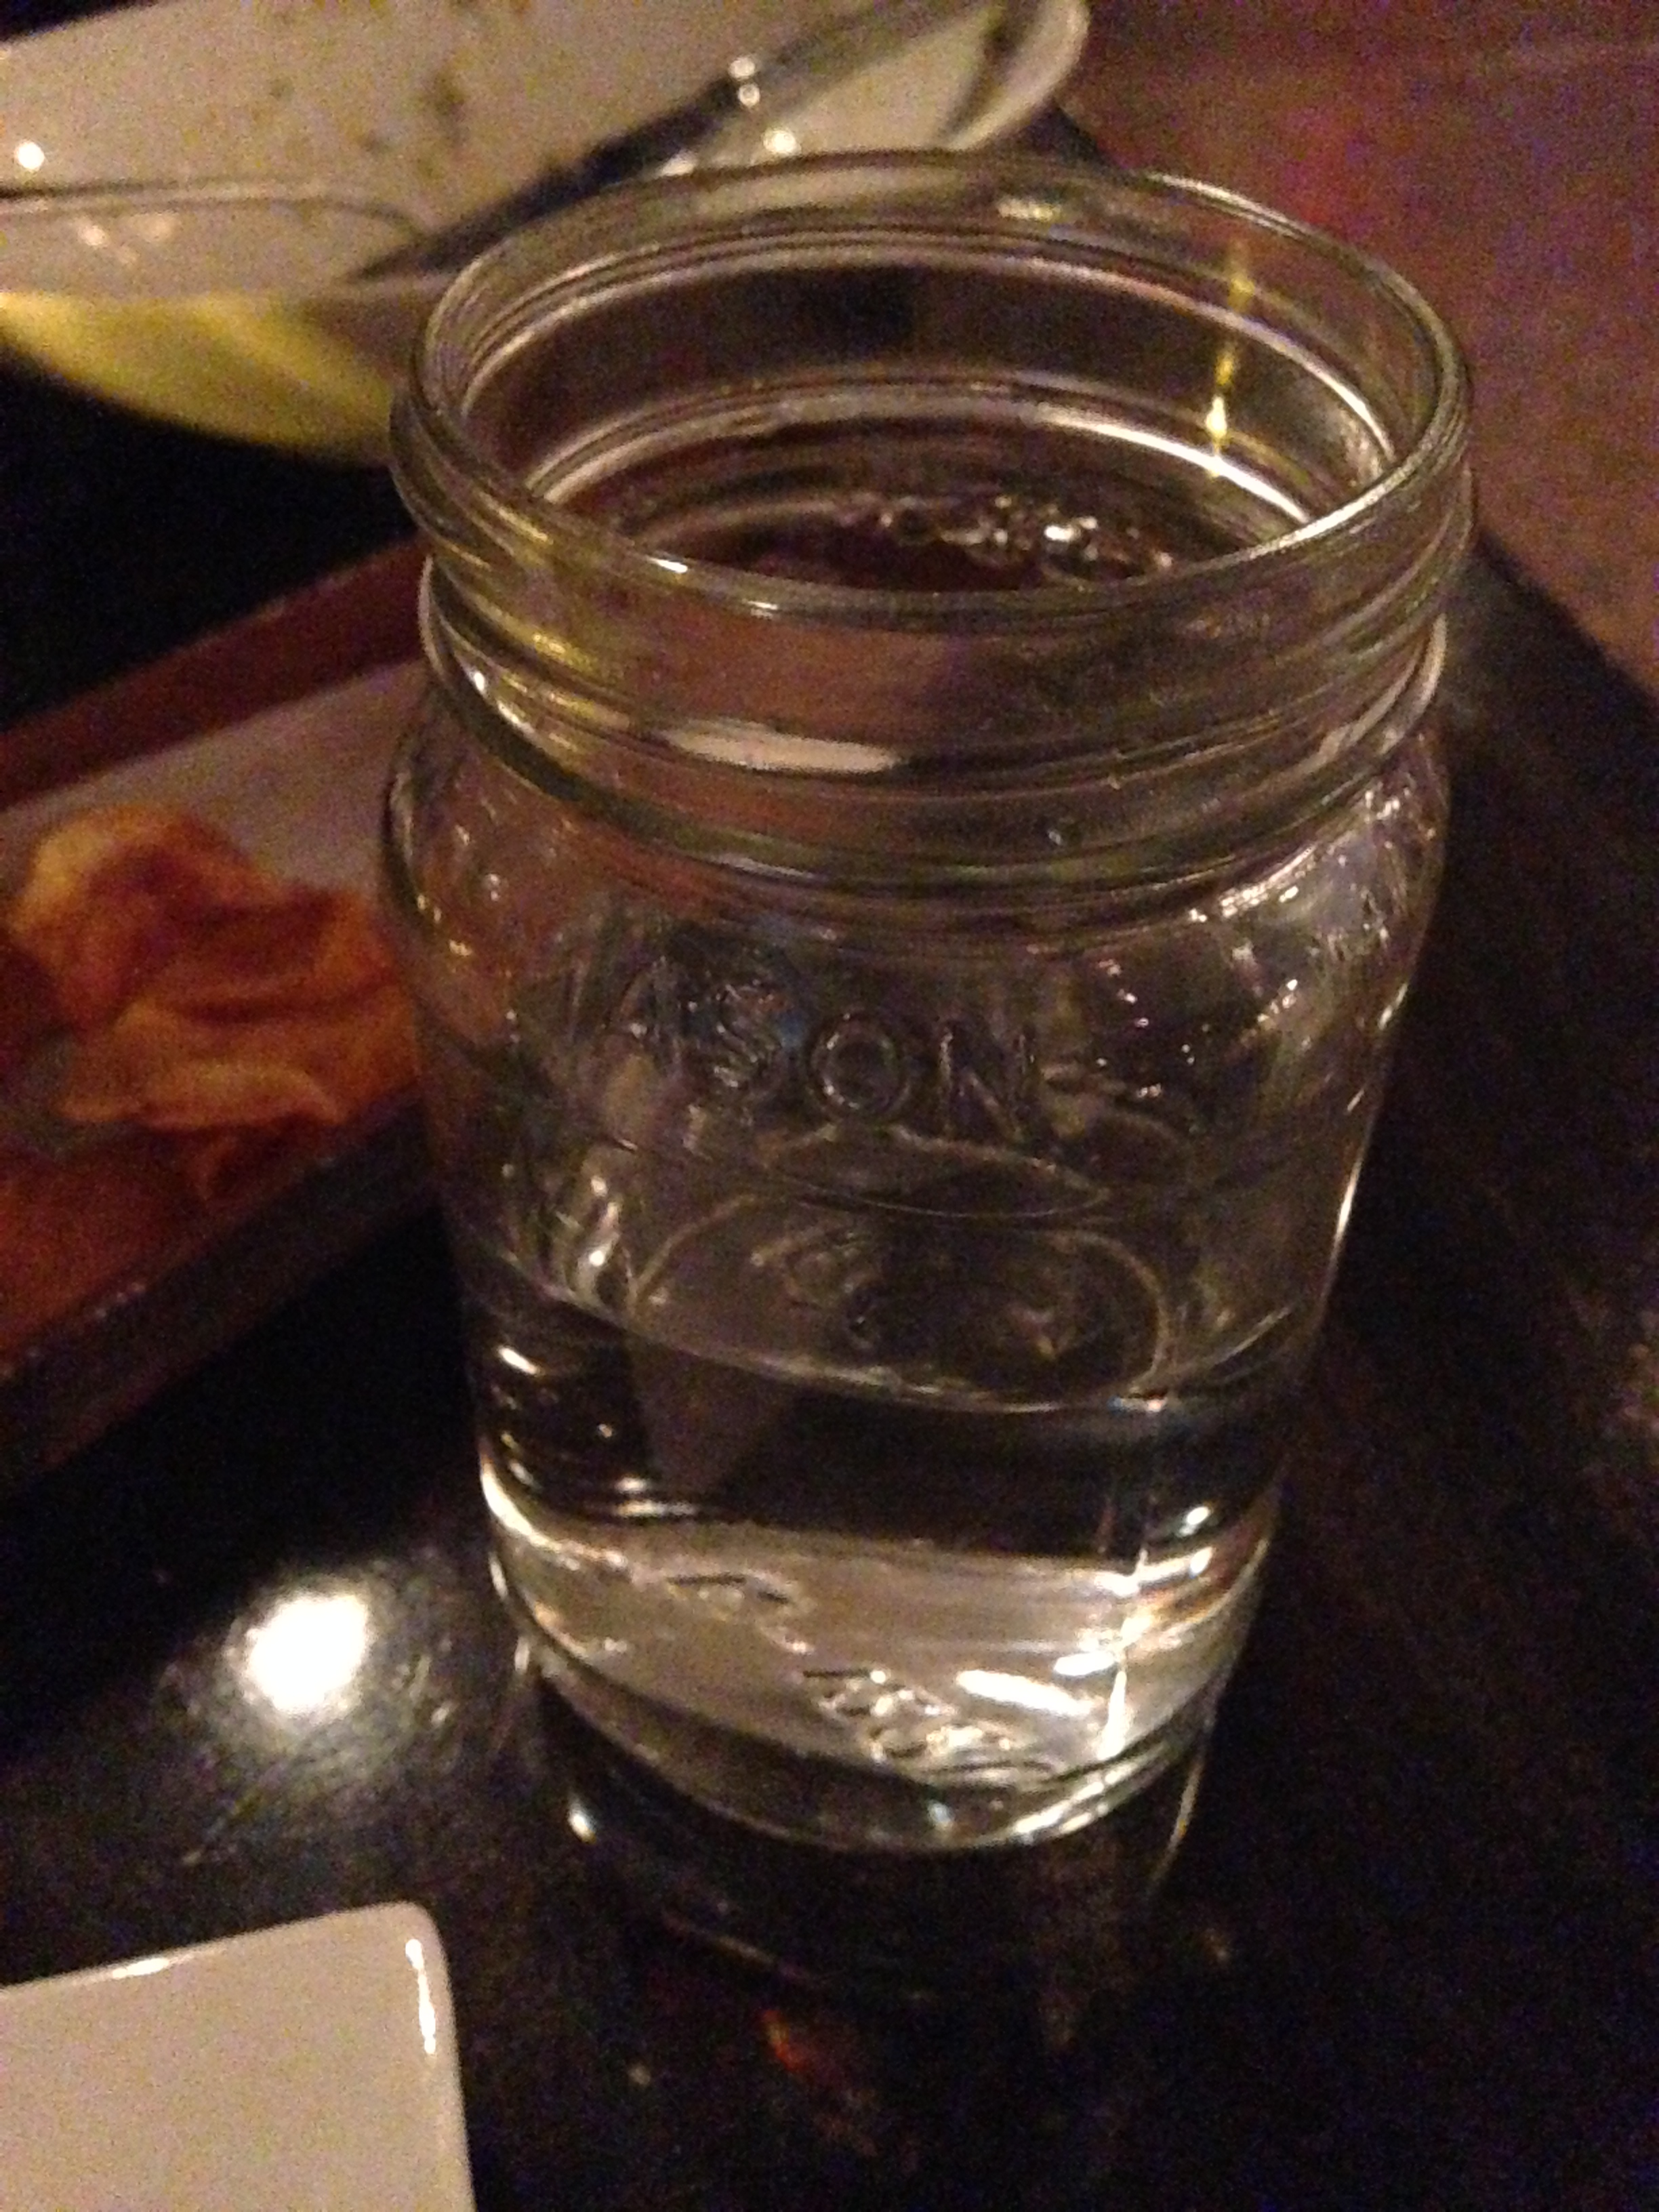 Our drinks were served in mason jars.